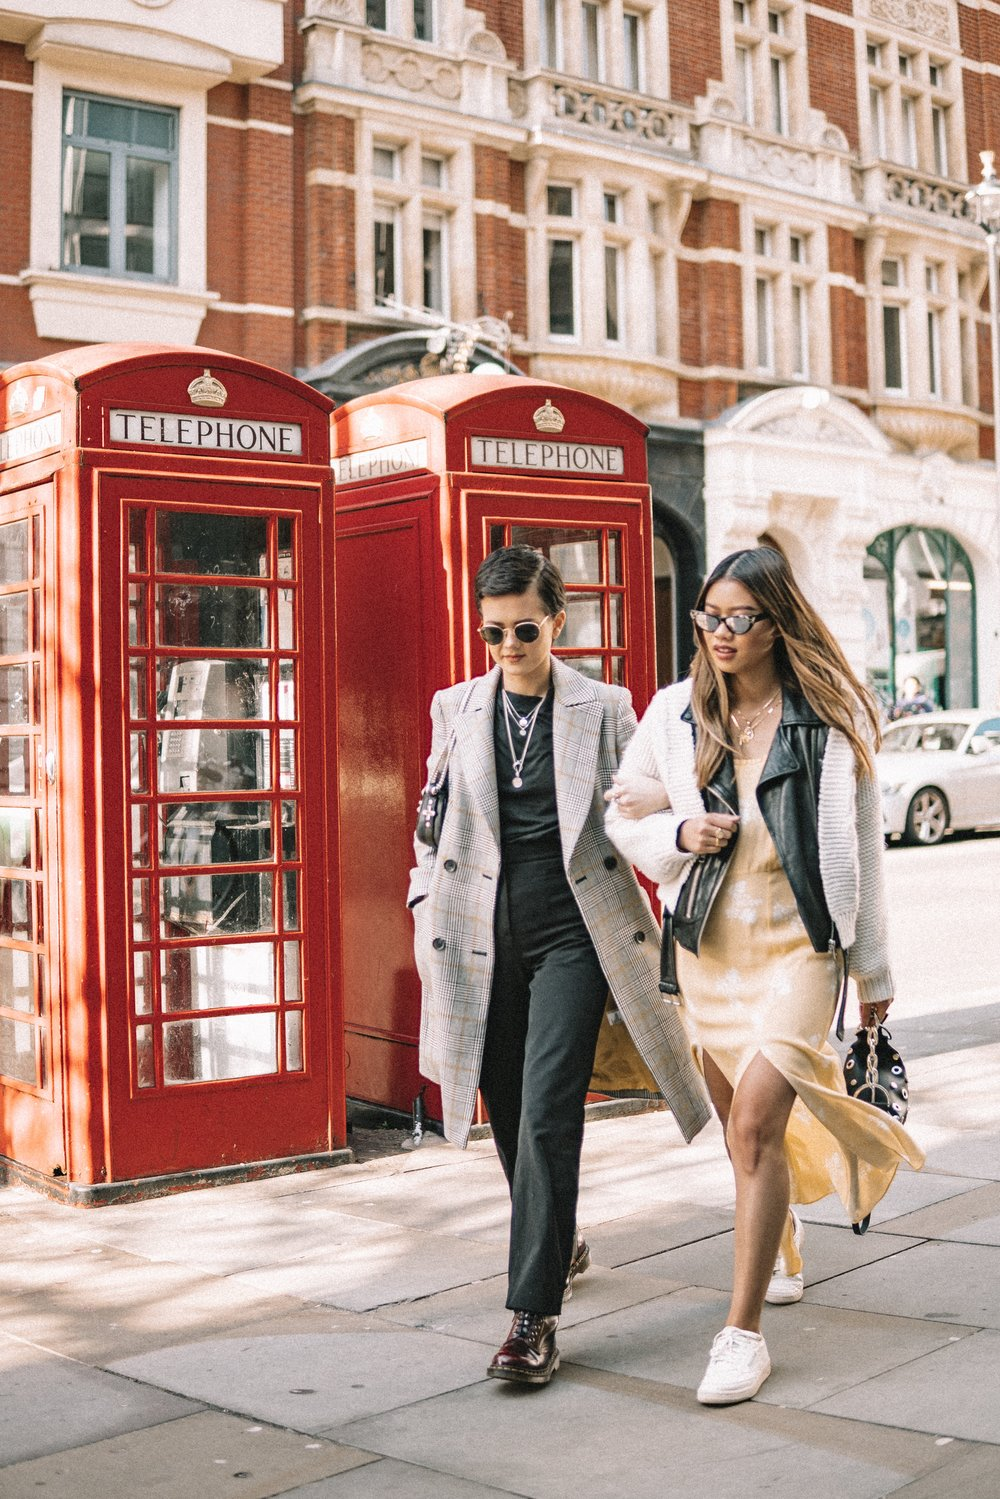 RUNNING AROUND LONDON WITH MY PARTNER IN CRIME - Totally forgot to post these cute pics Chloe & I took during LFW from February. It feels like this year has gone by so fast as we're already in June. How did this happen? Were we all too caught up in the weather to notice? Anyways, with summer coming up so soon I'm already planning my next trip away! Where shall I go this summer?